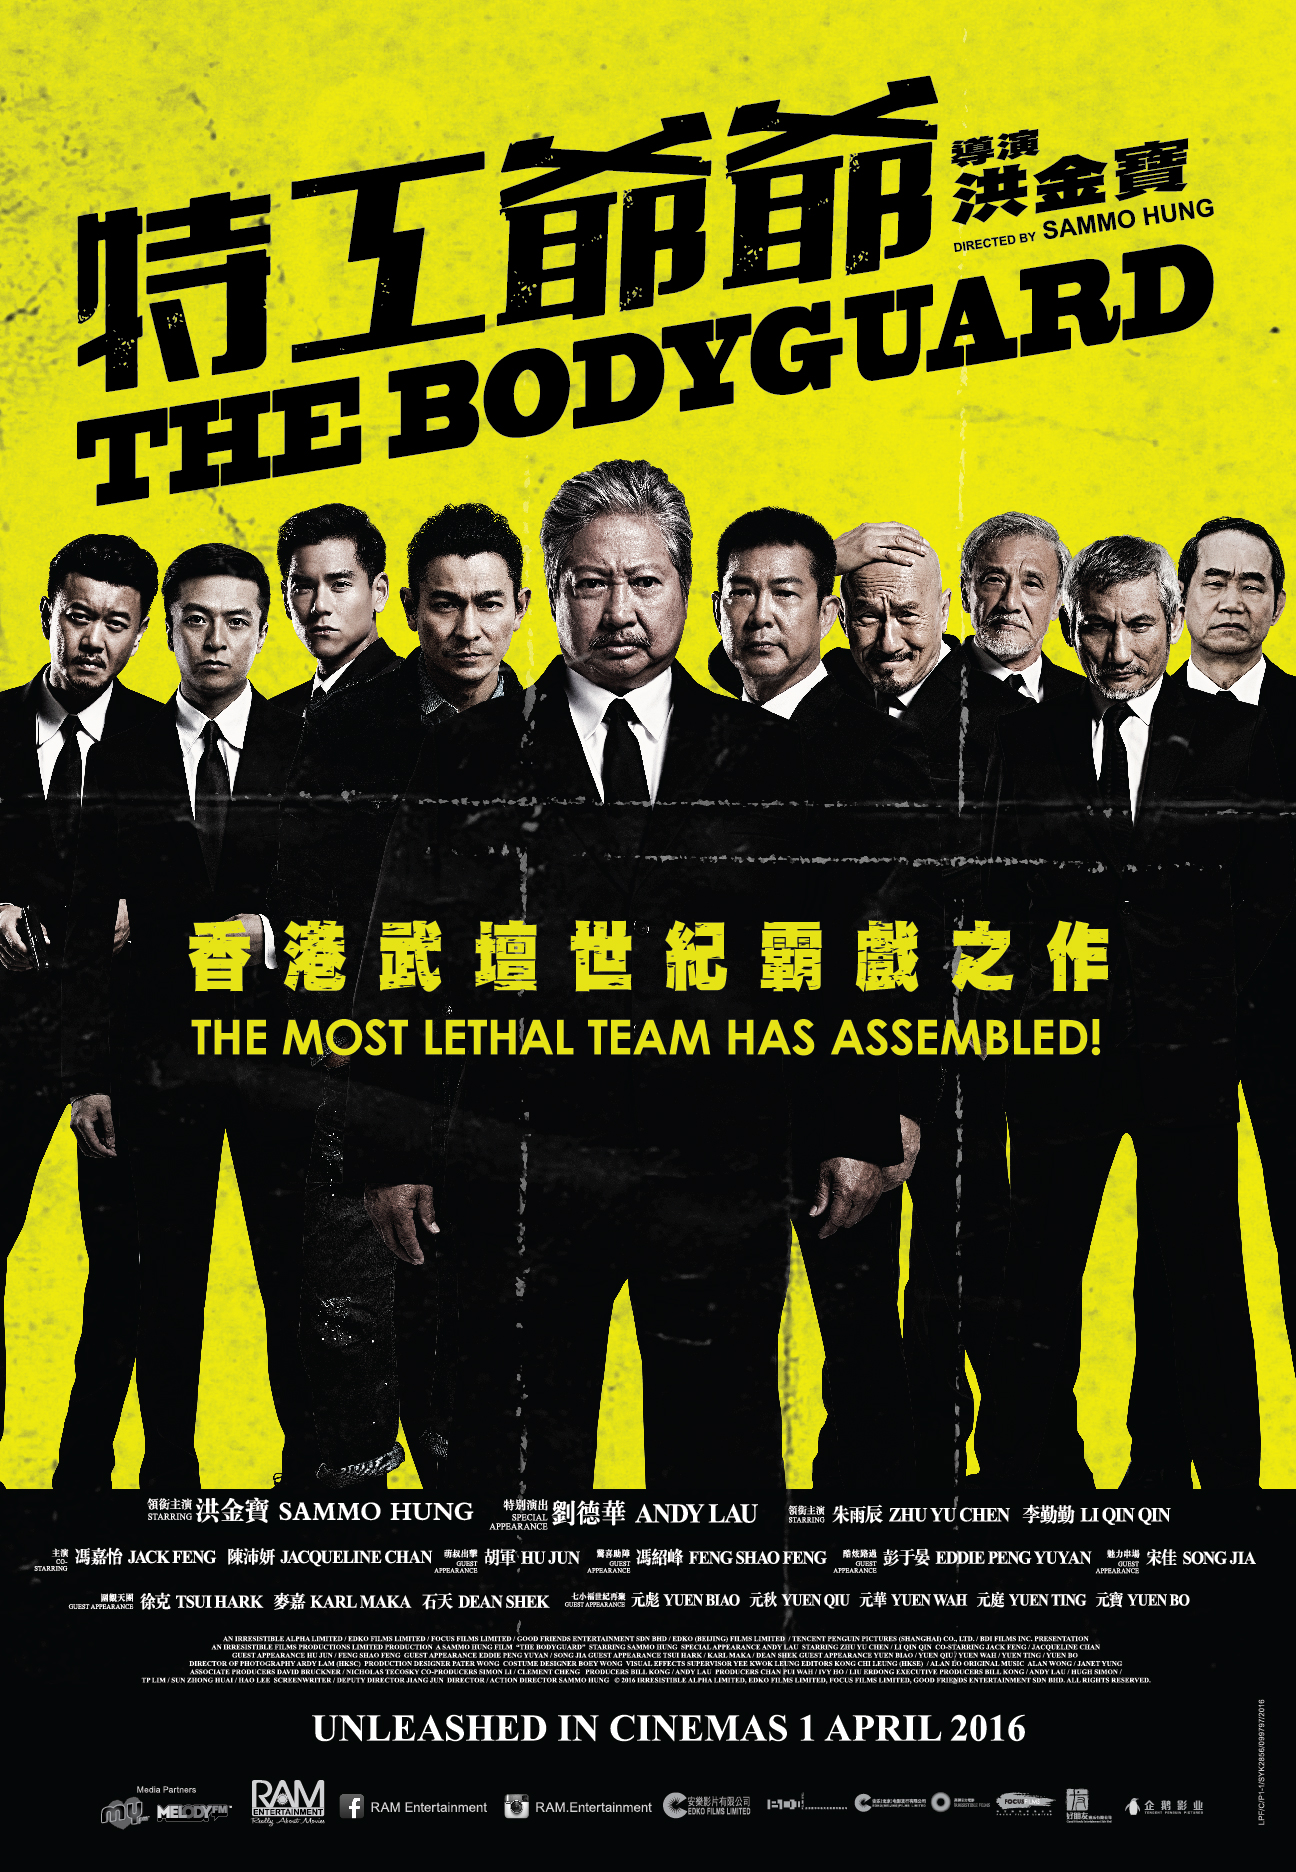 Bodyguard_Poster-27x39-yellow-Latest-OL-01